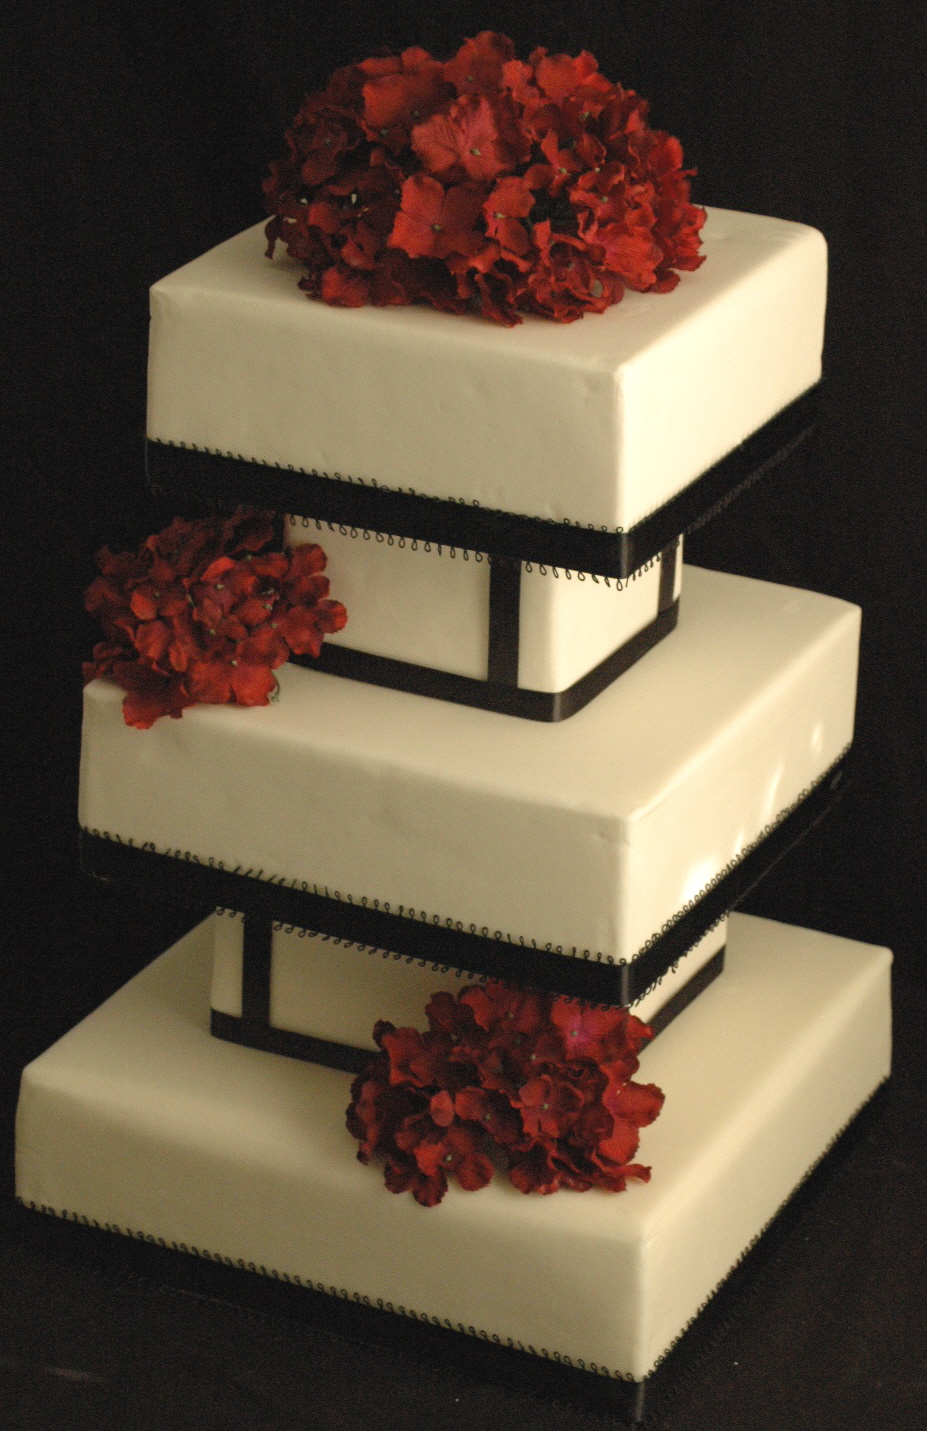 Outstanding Black and White Square Wedding Cake Designs 927 x 1431 · 497 kB · jpeg